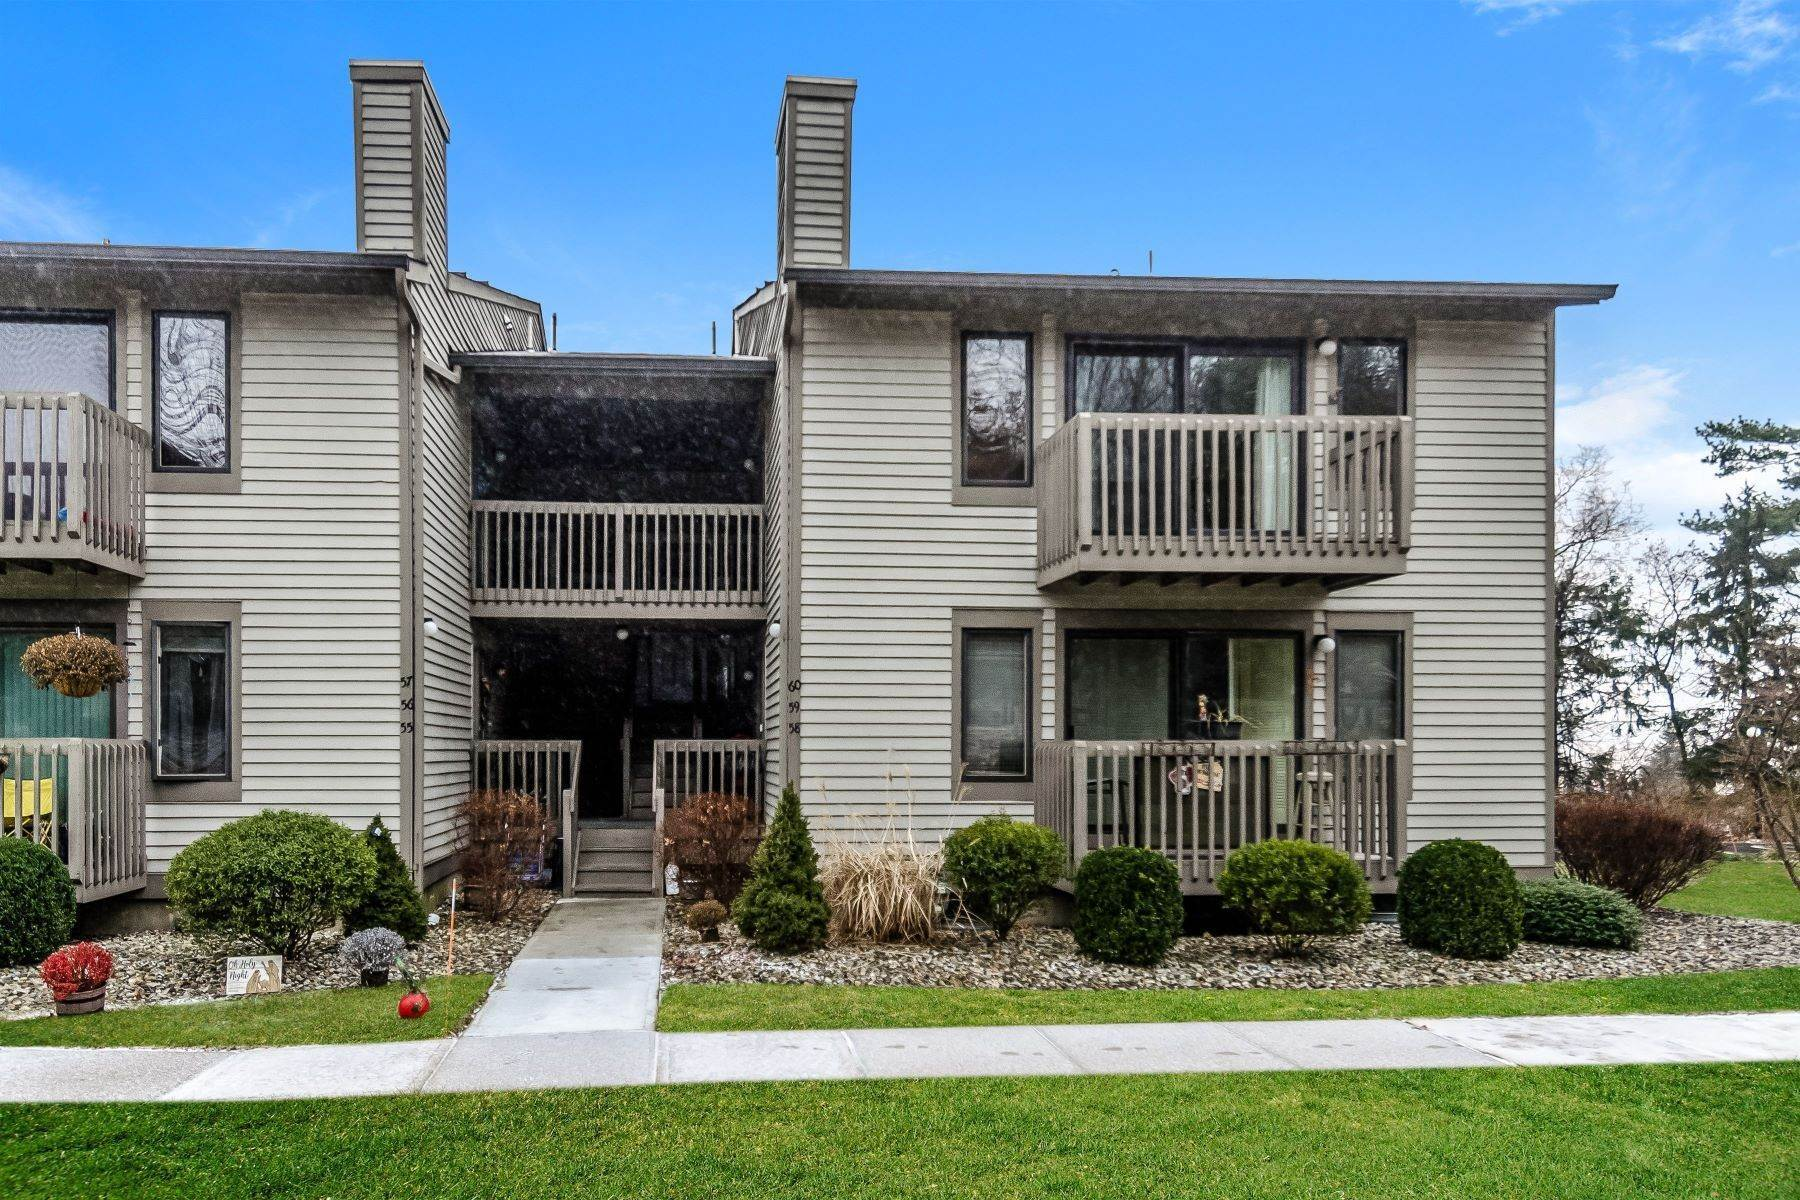 Condominiums for Sale at Just the Right Size 60 Sam Bonnell Drive Clinton, New Jersey 08809 United States